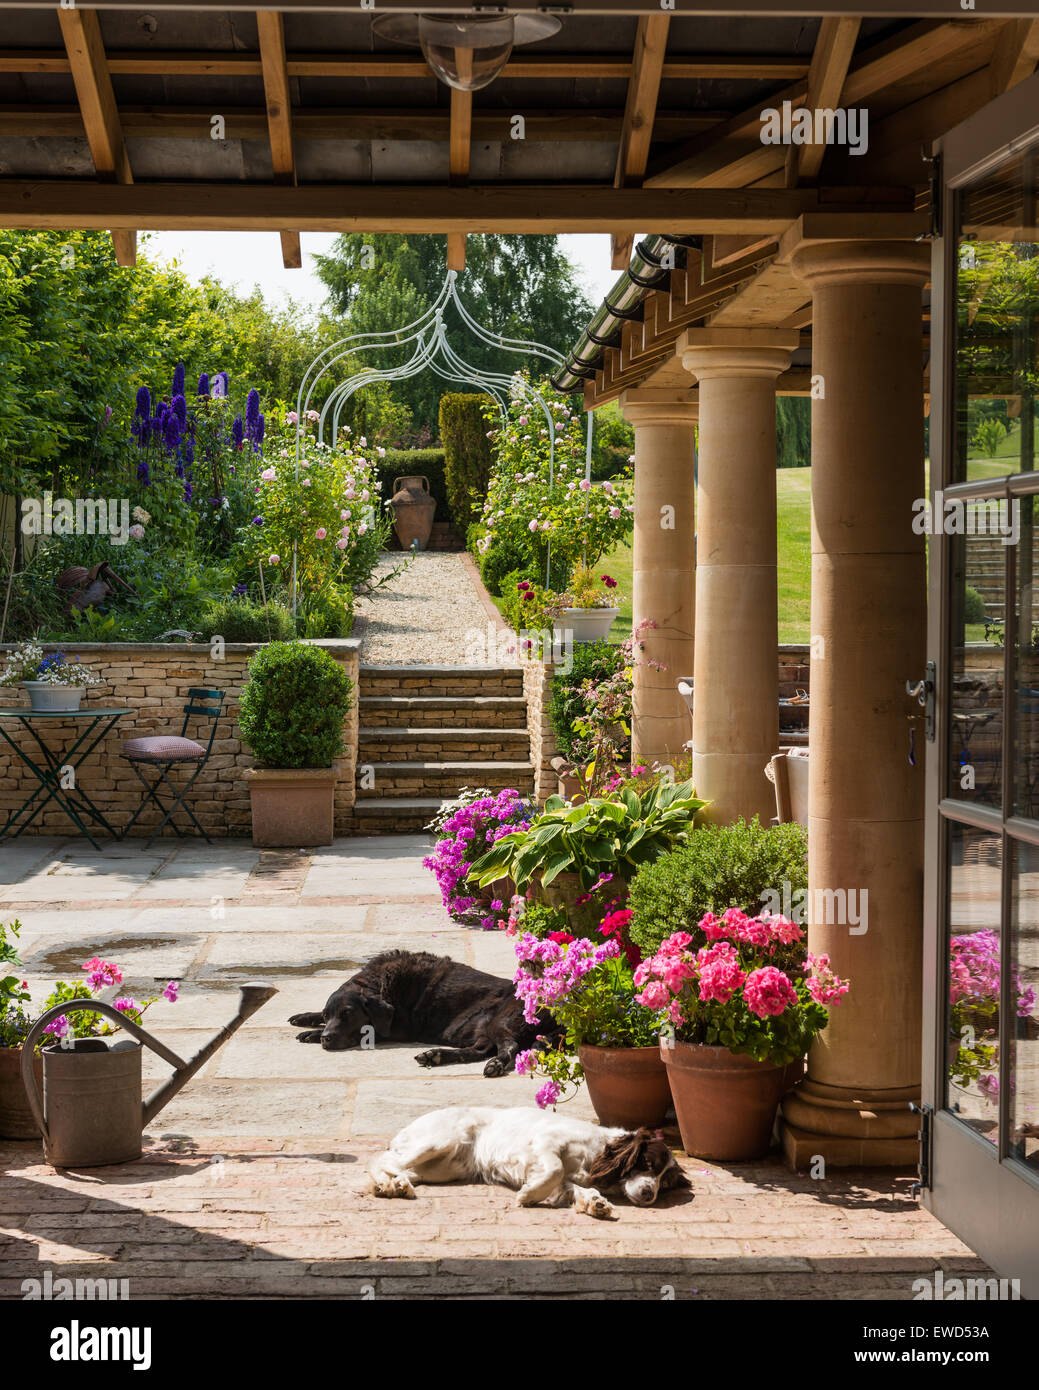 View from the loggia looking up to sunny garden with sleeping dogs and potted geraniums - Stock Image